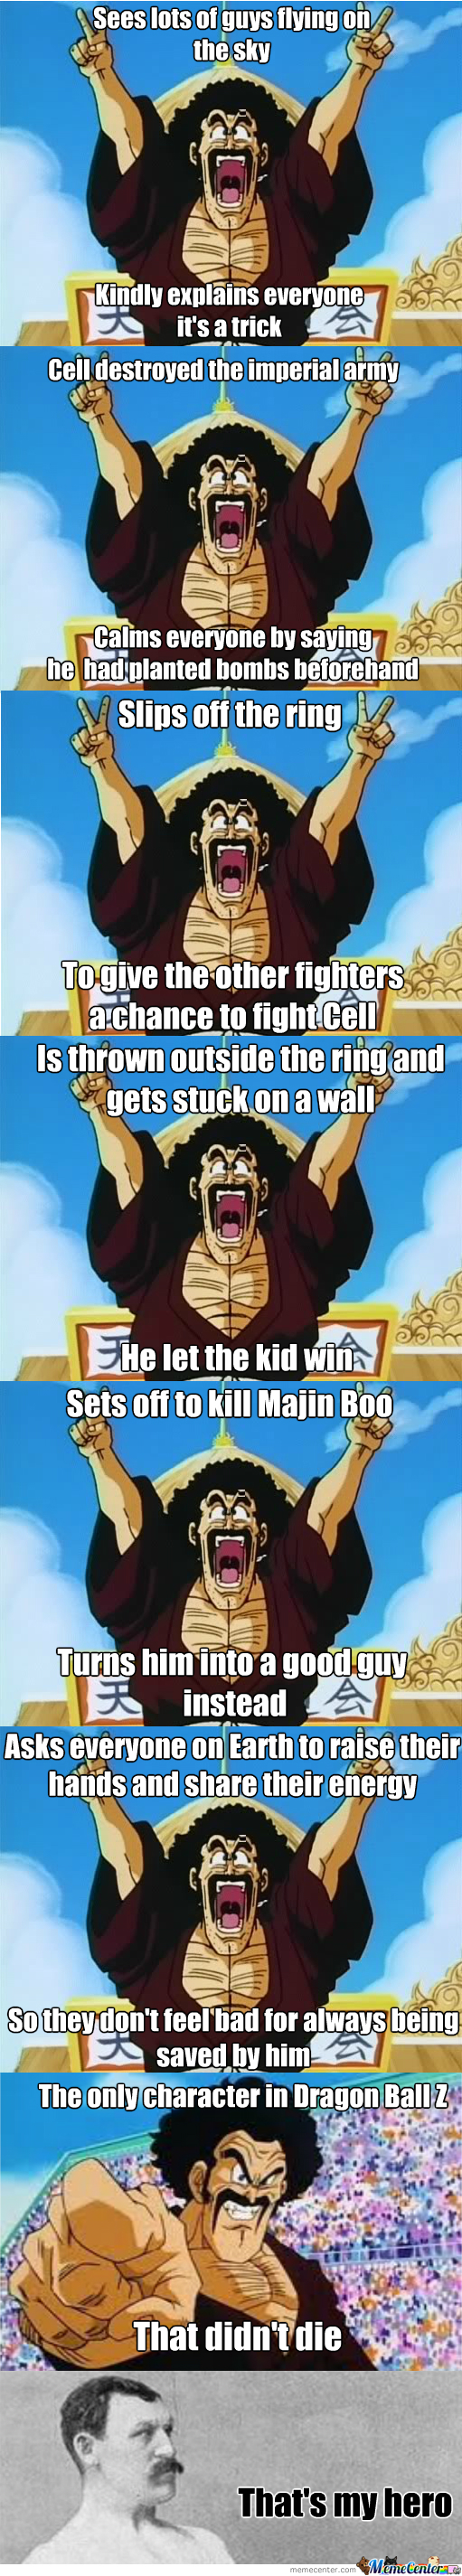 good guy mr satan_o_1929373 good guy mr satan by yamiryuuzero meme center